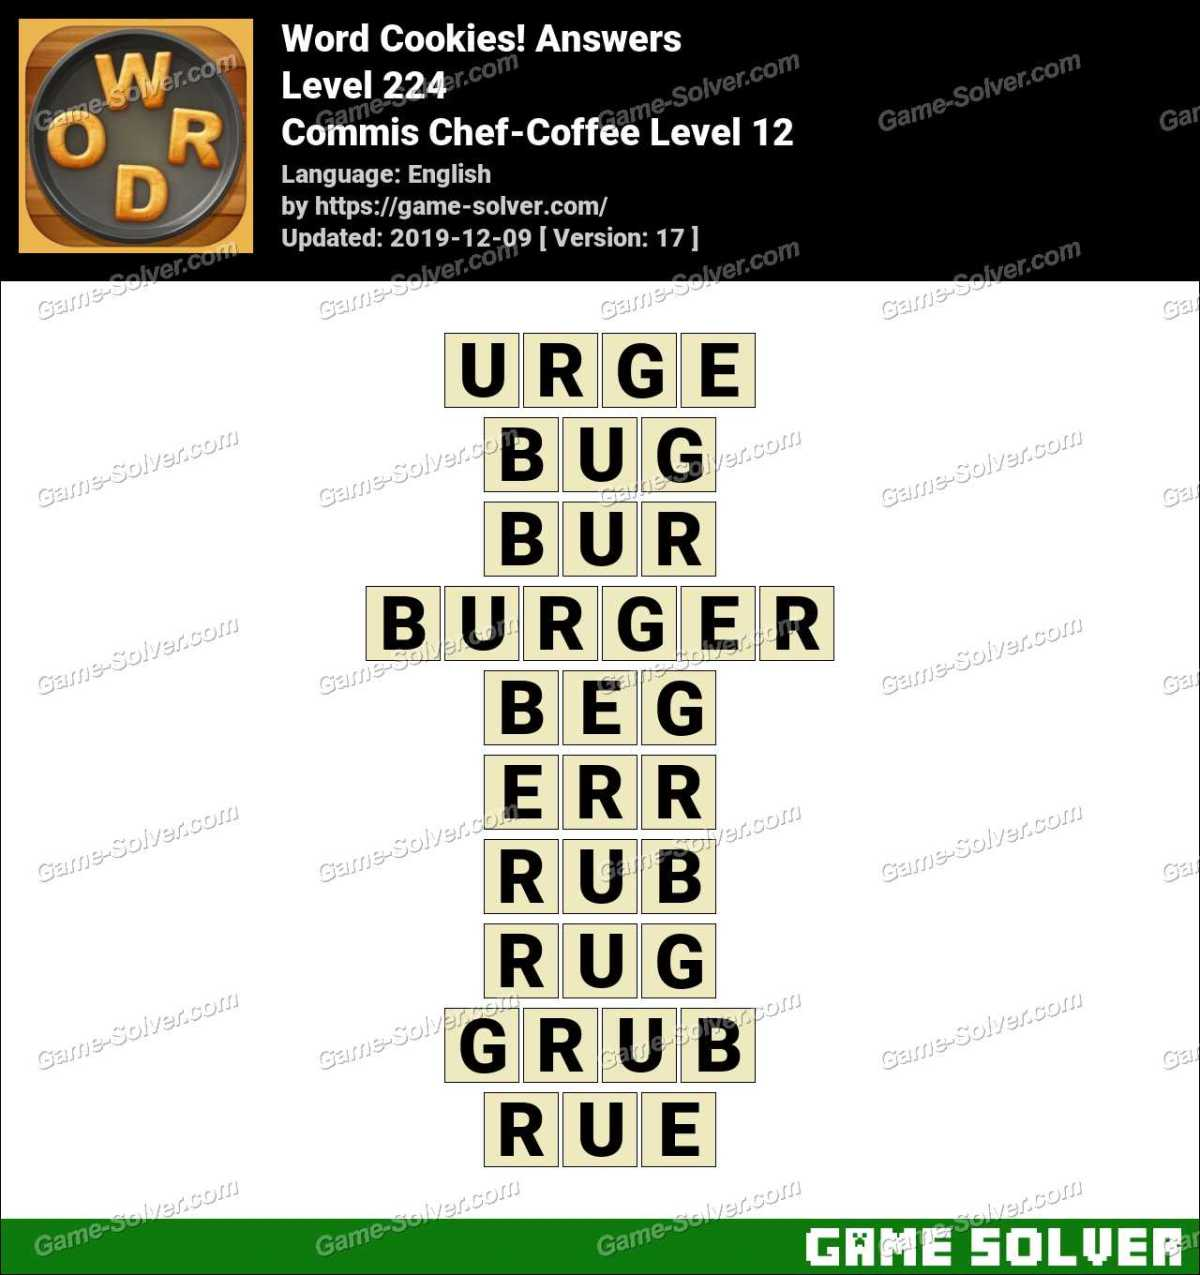 Word Cookies Commis Chef-Coffee Level 12 Answers